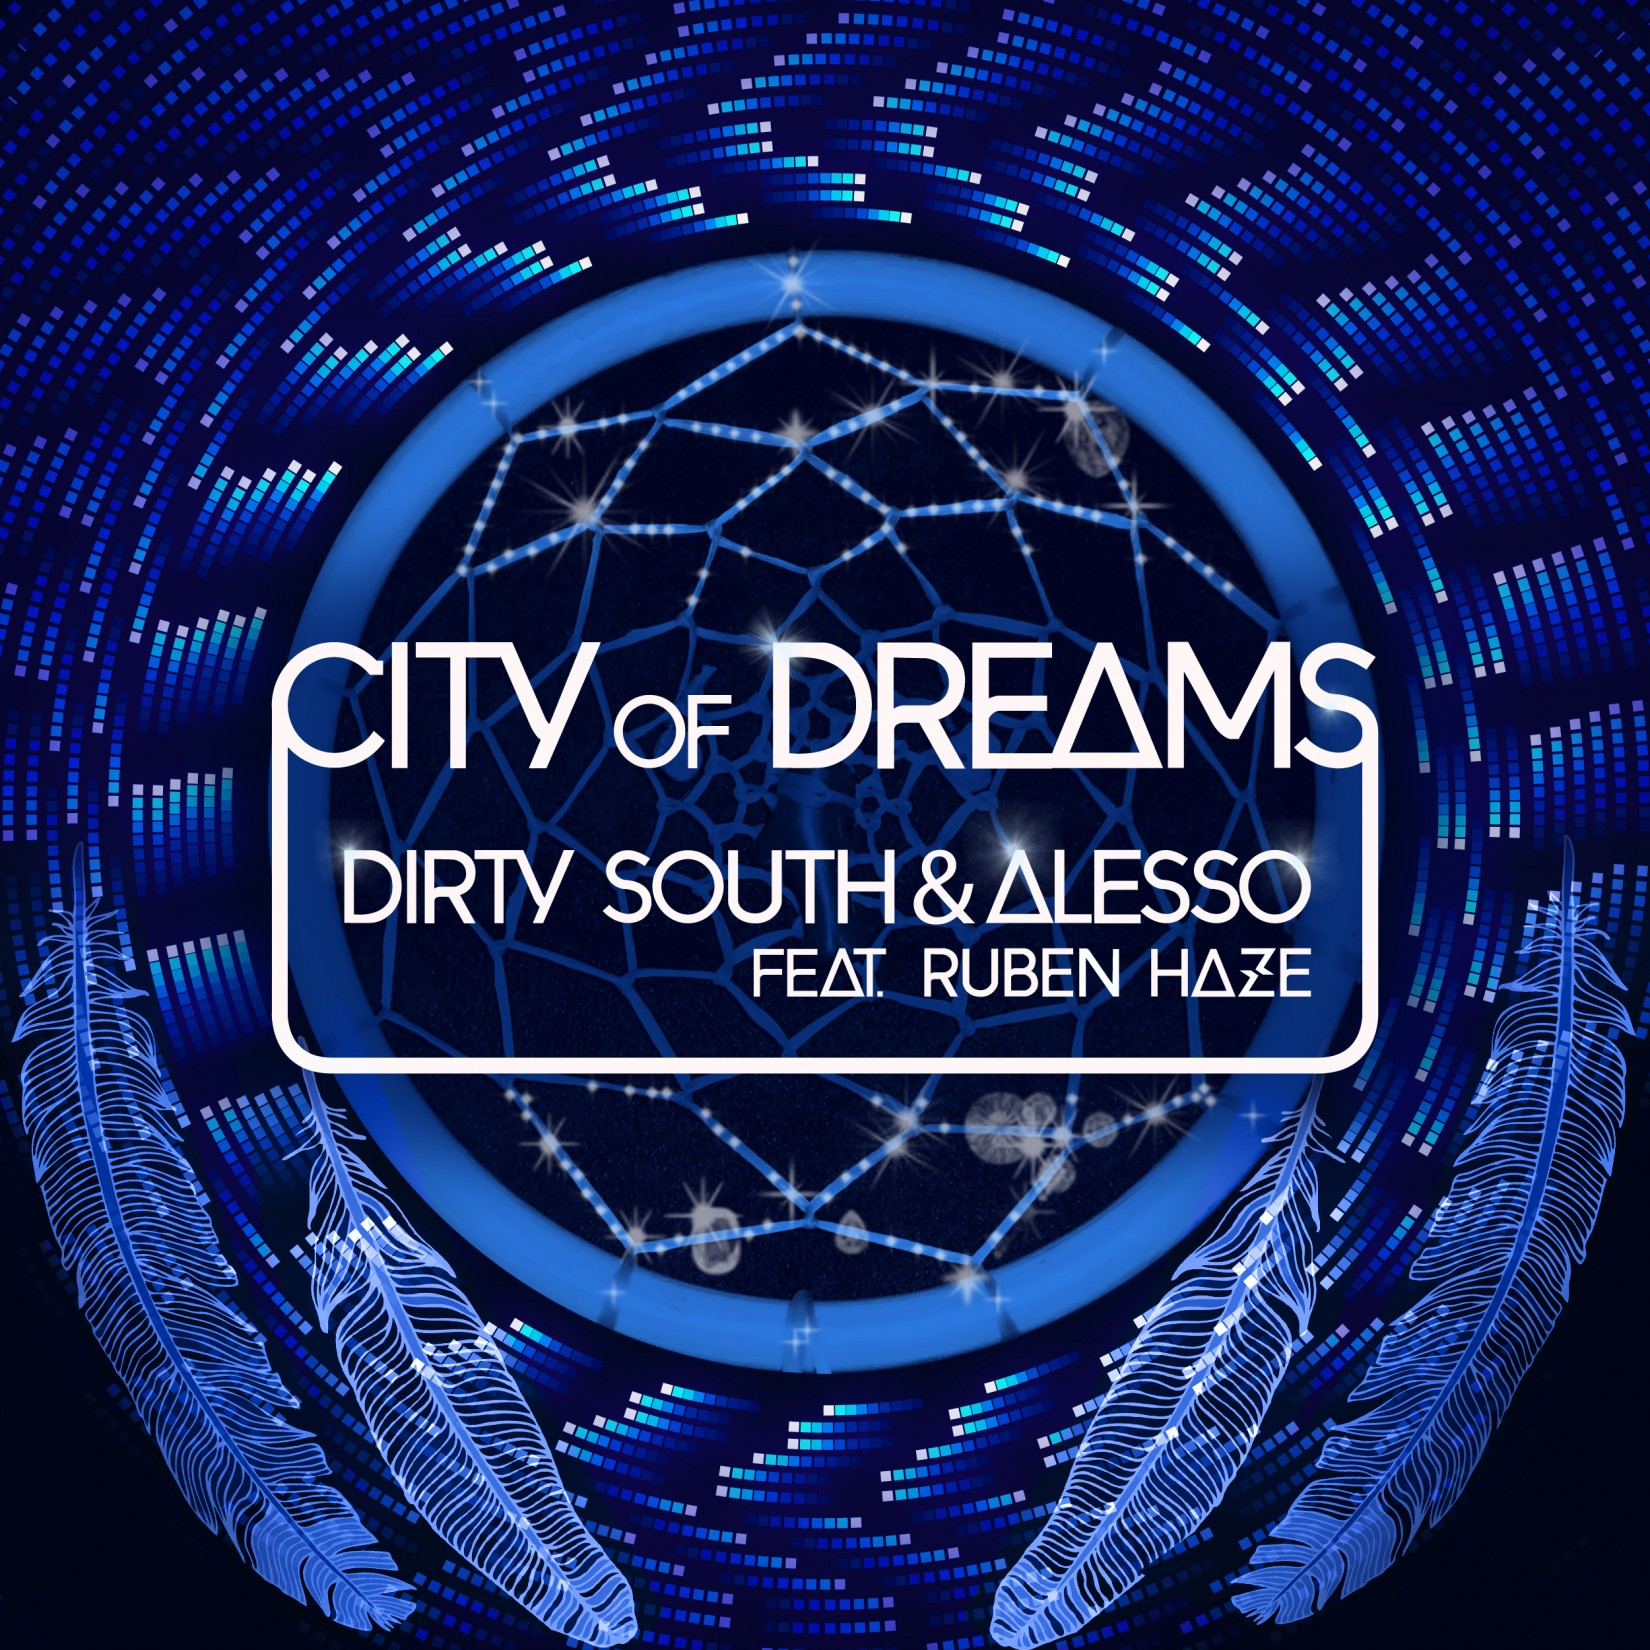 City of Dreams, Dirty South + Alesso